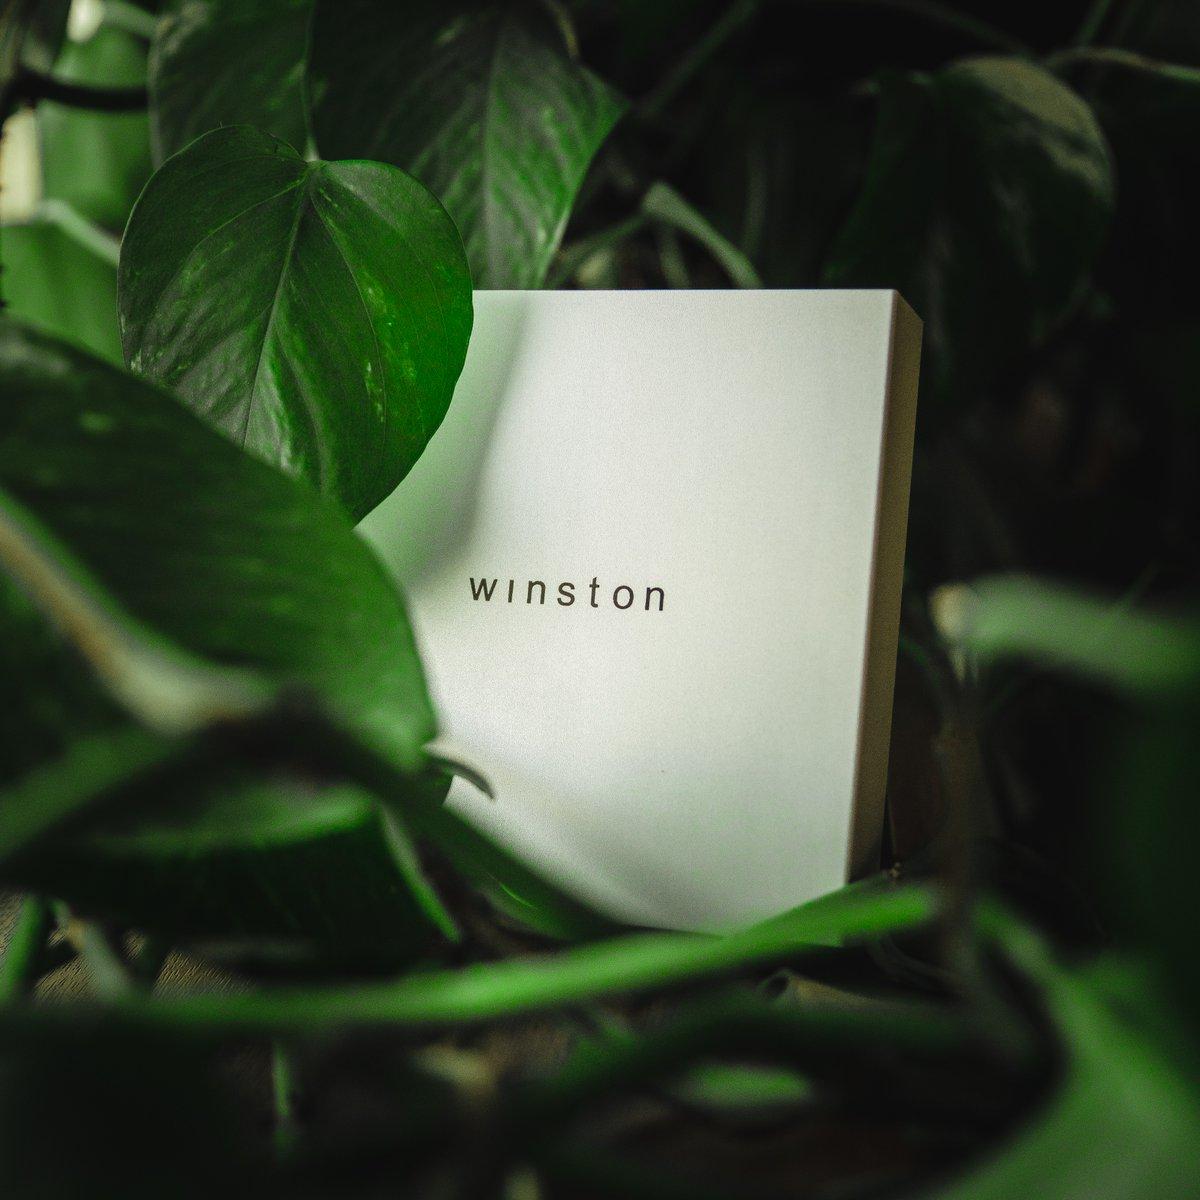 Winston uses state-of-the-art technology that protects your privacy on any device at home!  Get Winston now with up to 54% OFF http://bit.ly/WINSTON_indiegogo… #cyber #cyberpunk #cybermonday #cybercorner #cybersecurity #cyberpunkart #cyberwar #data #datascience #datacenter #databendingpic.twitter.com/PN0tMOwUW6